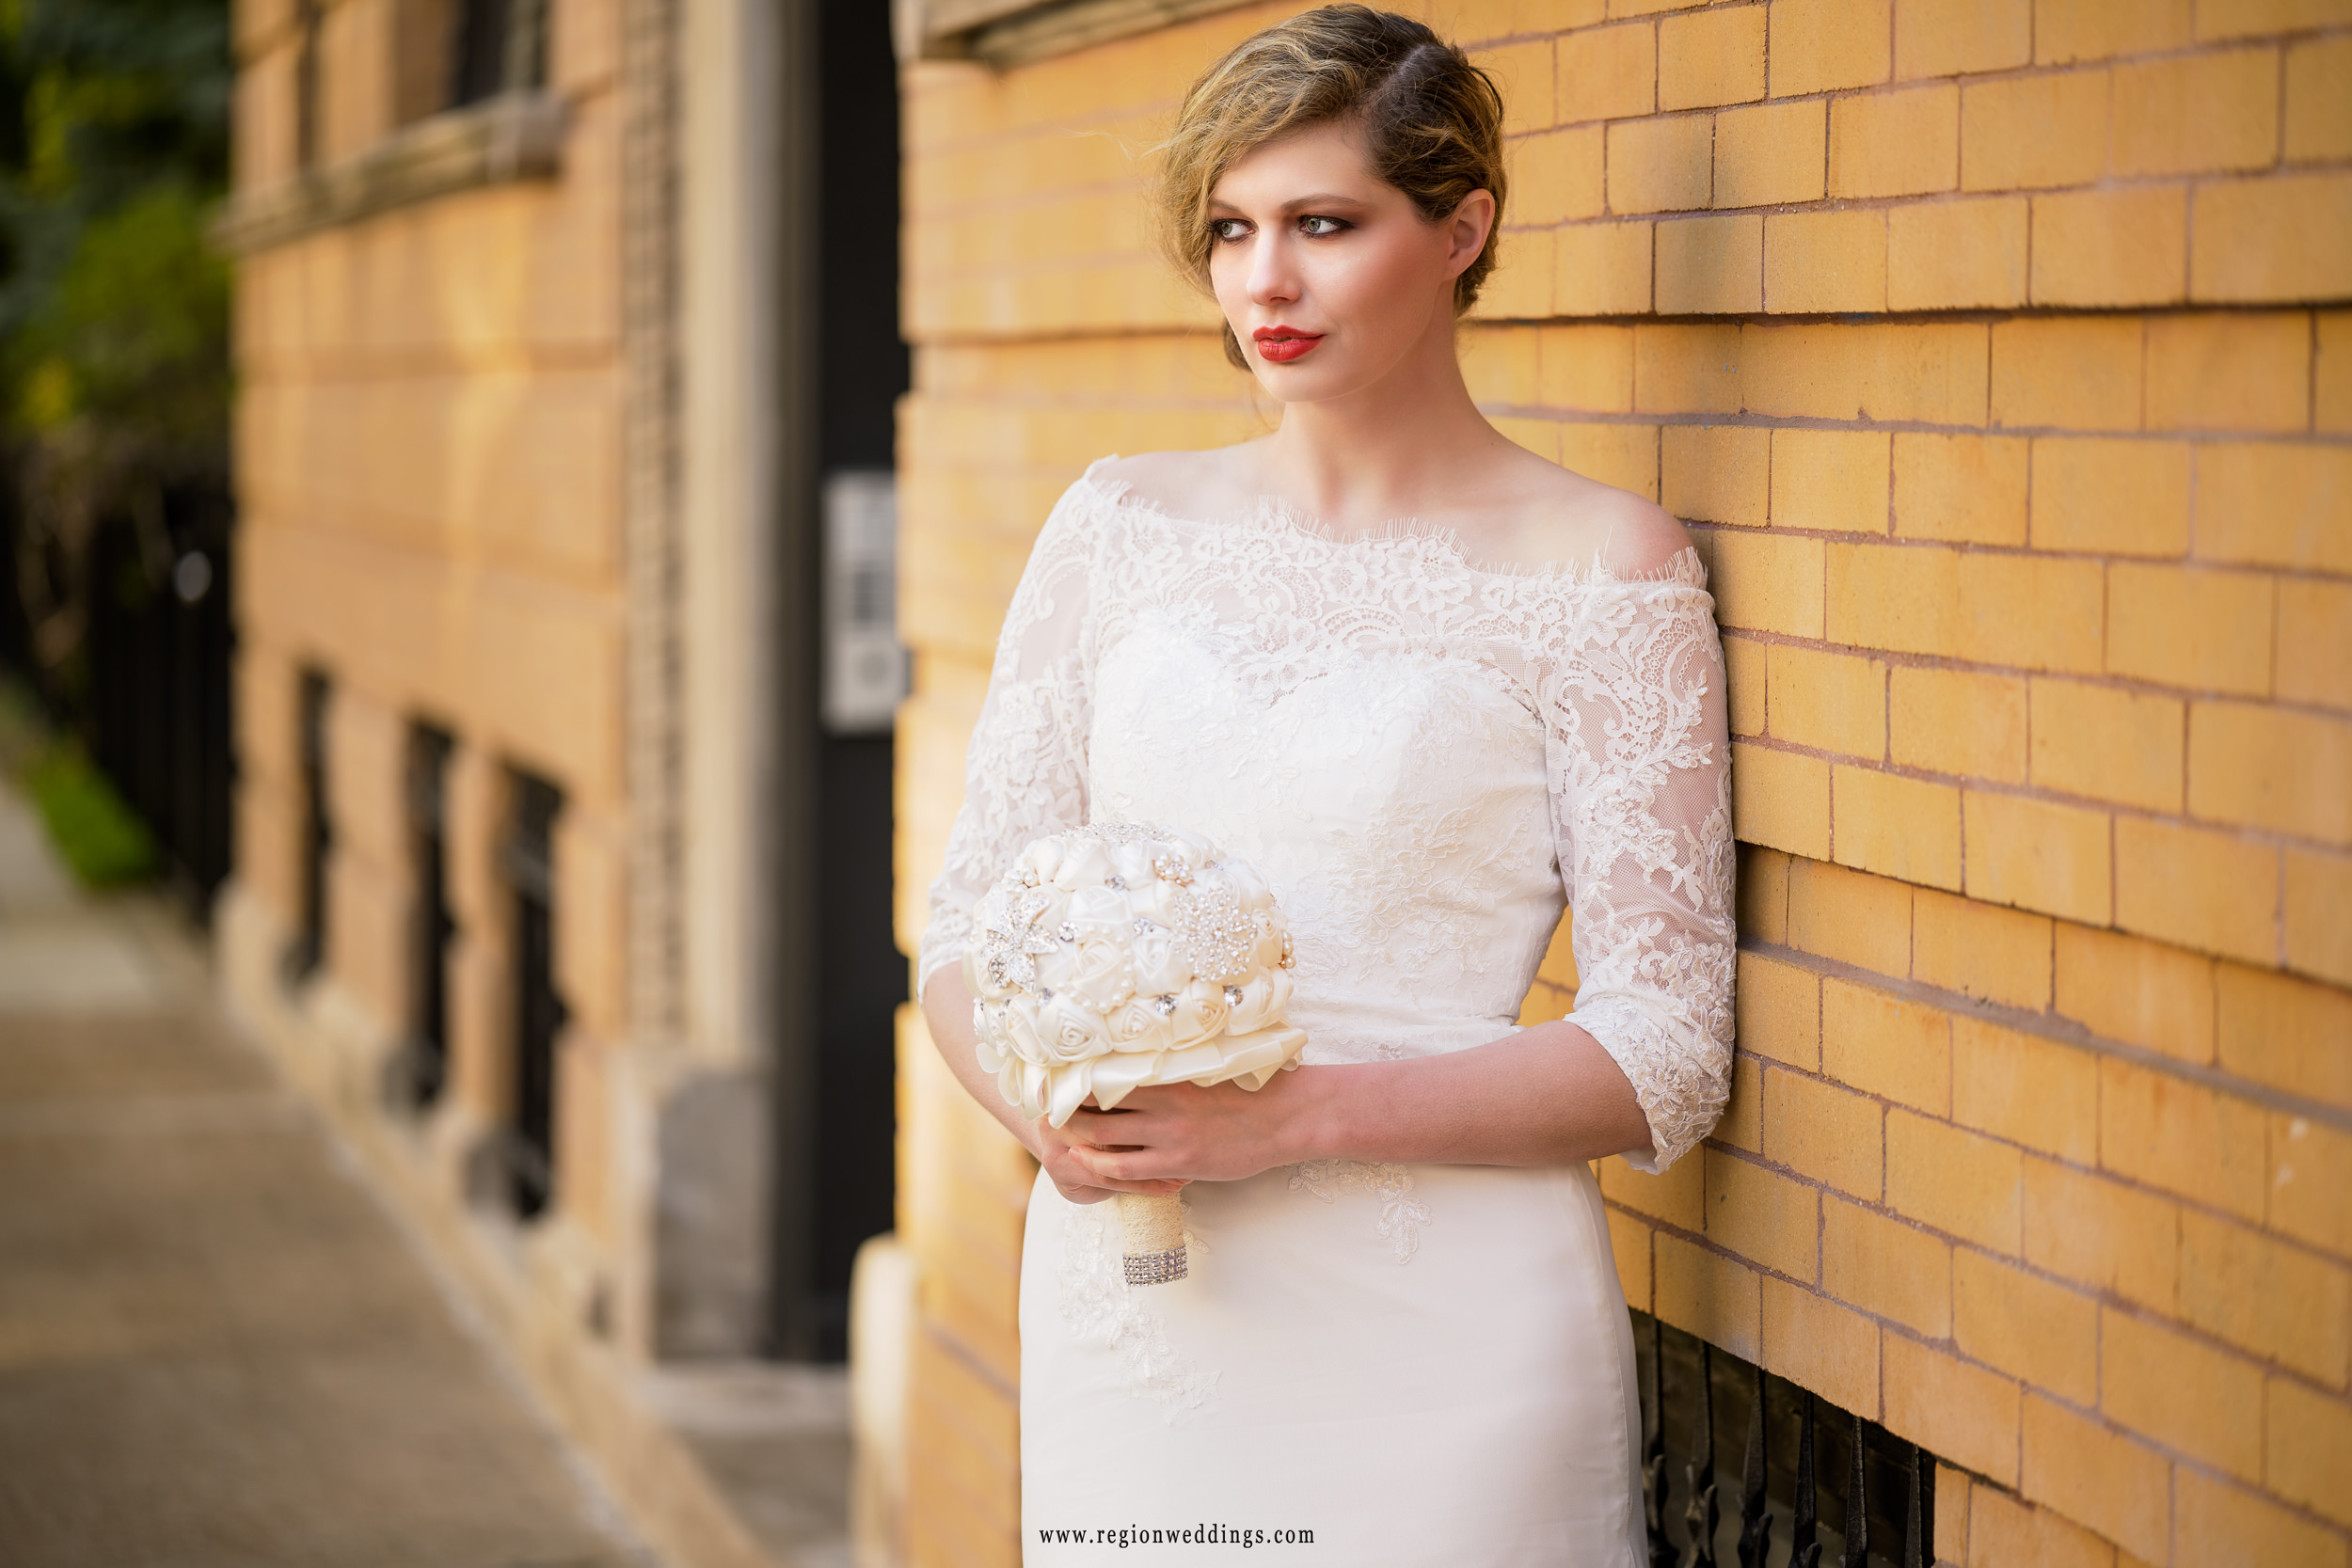 Bride leans against a golden brick wall for her Chicago bridal session in the Bucktown / Wicker Park area of the city.